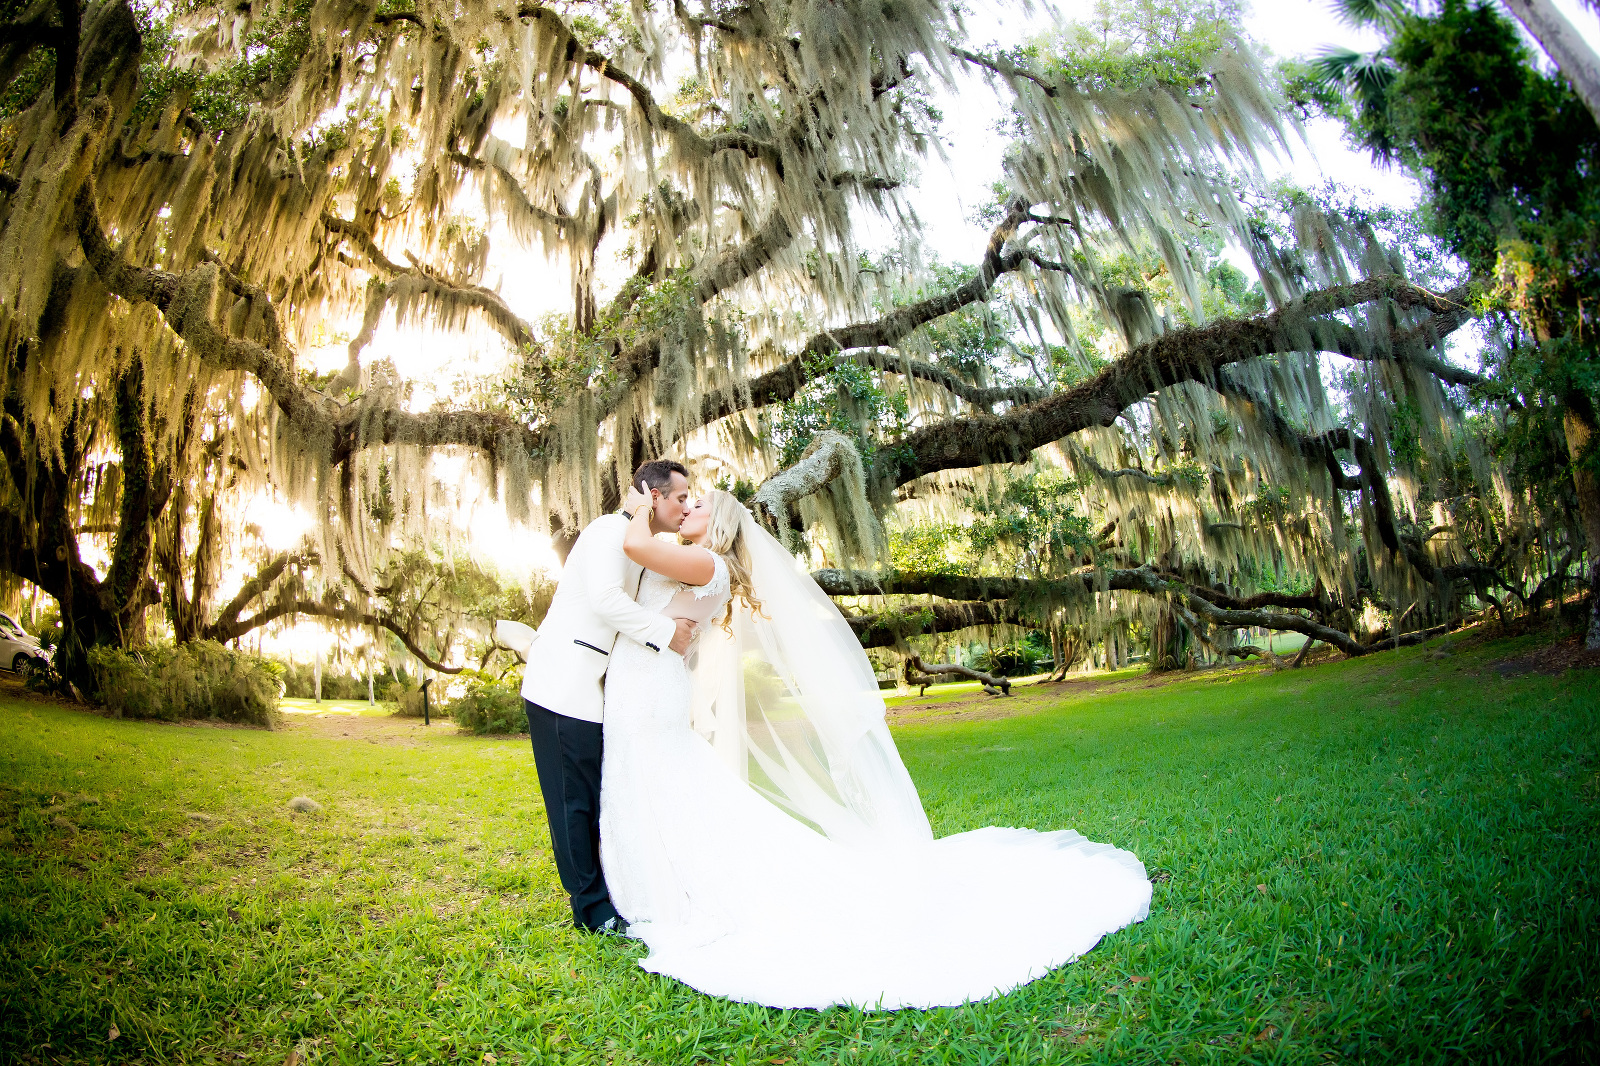 jacksonville wedding photographer, jacksonville engagement photographer, jacksonville family photographer, jacksonville newborn photographer, tonya beaver photography